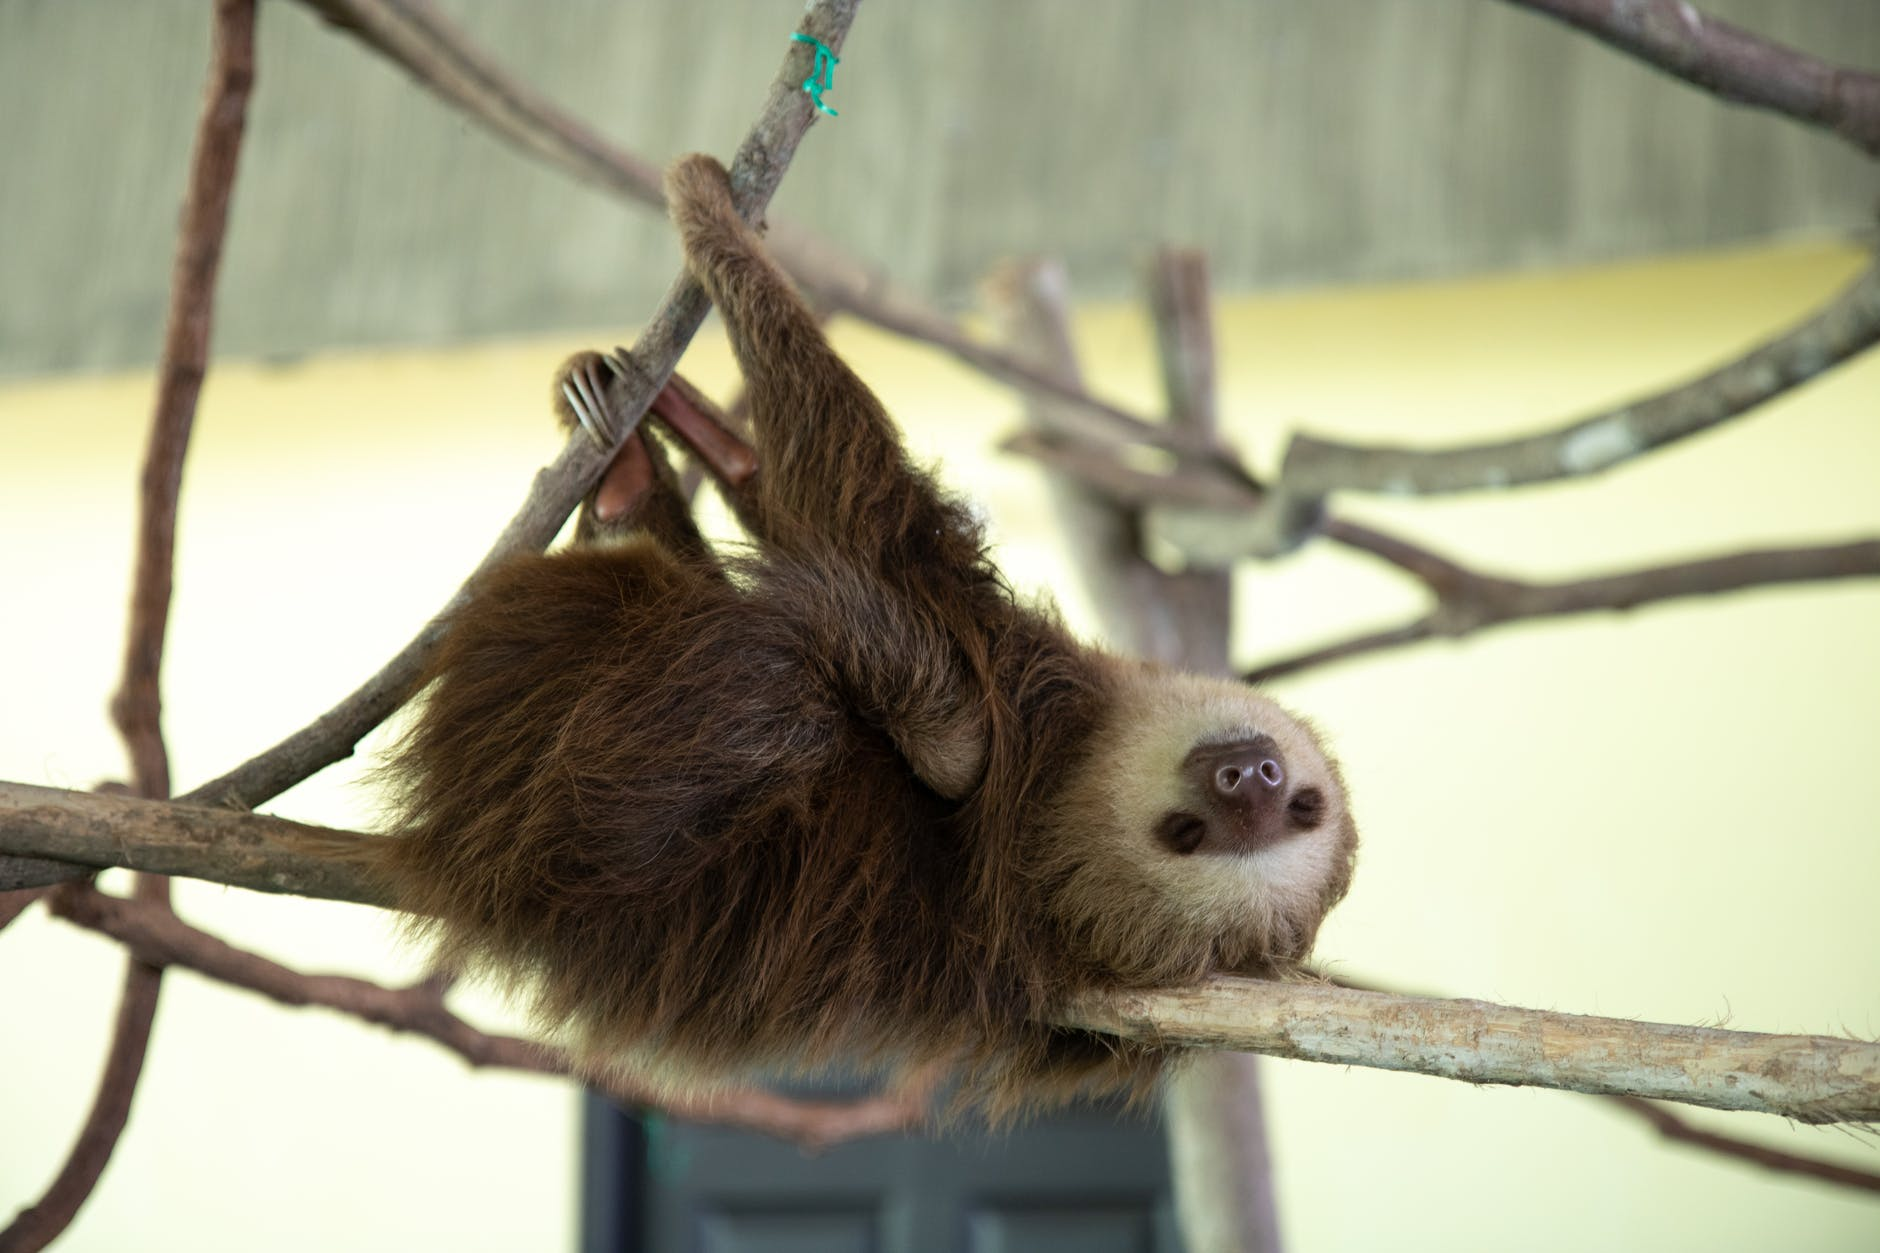 A young two-toed sloth resting on a branch